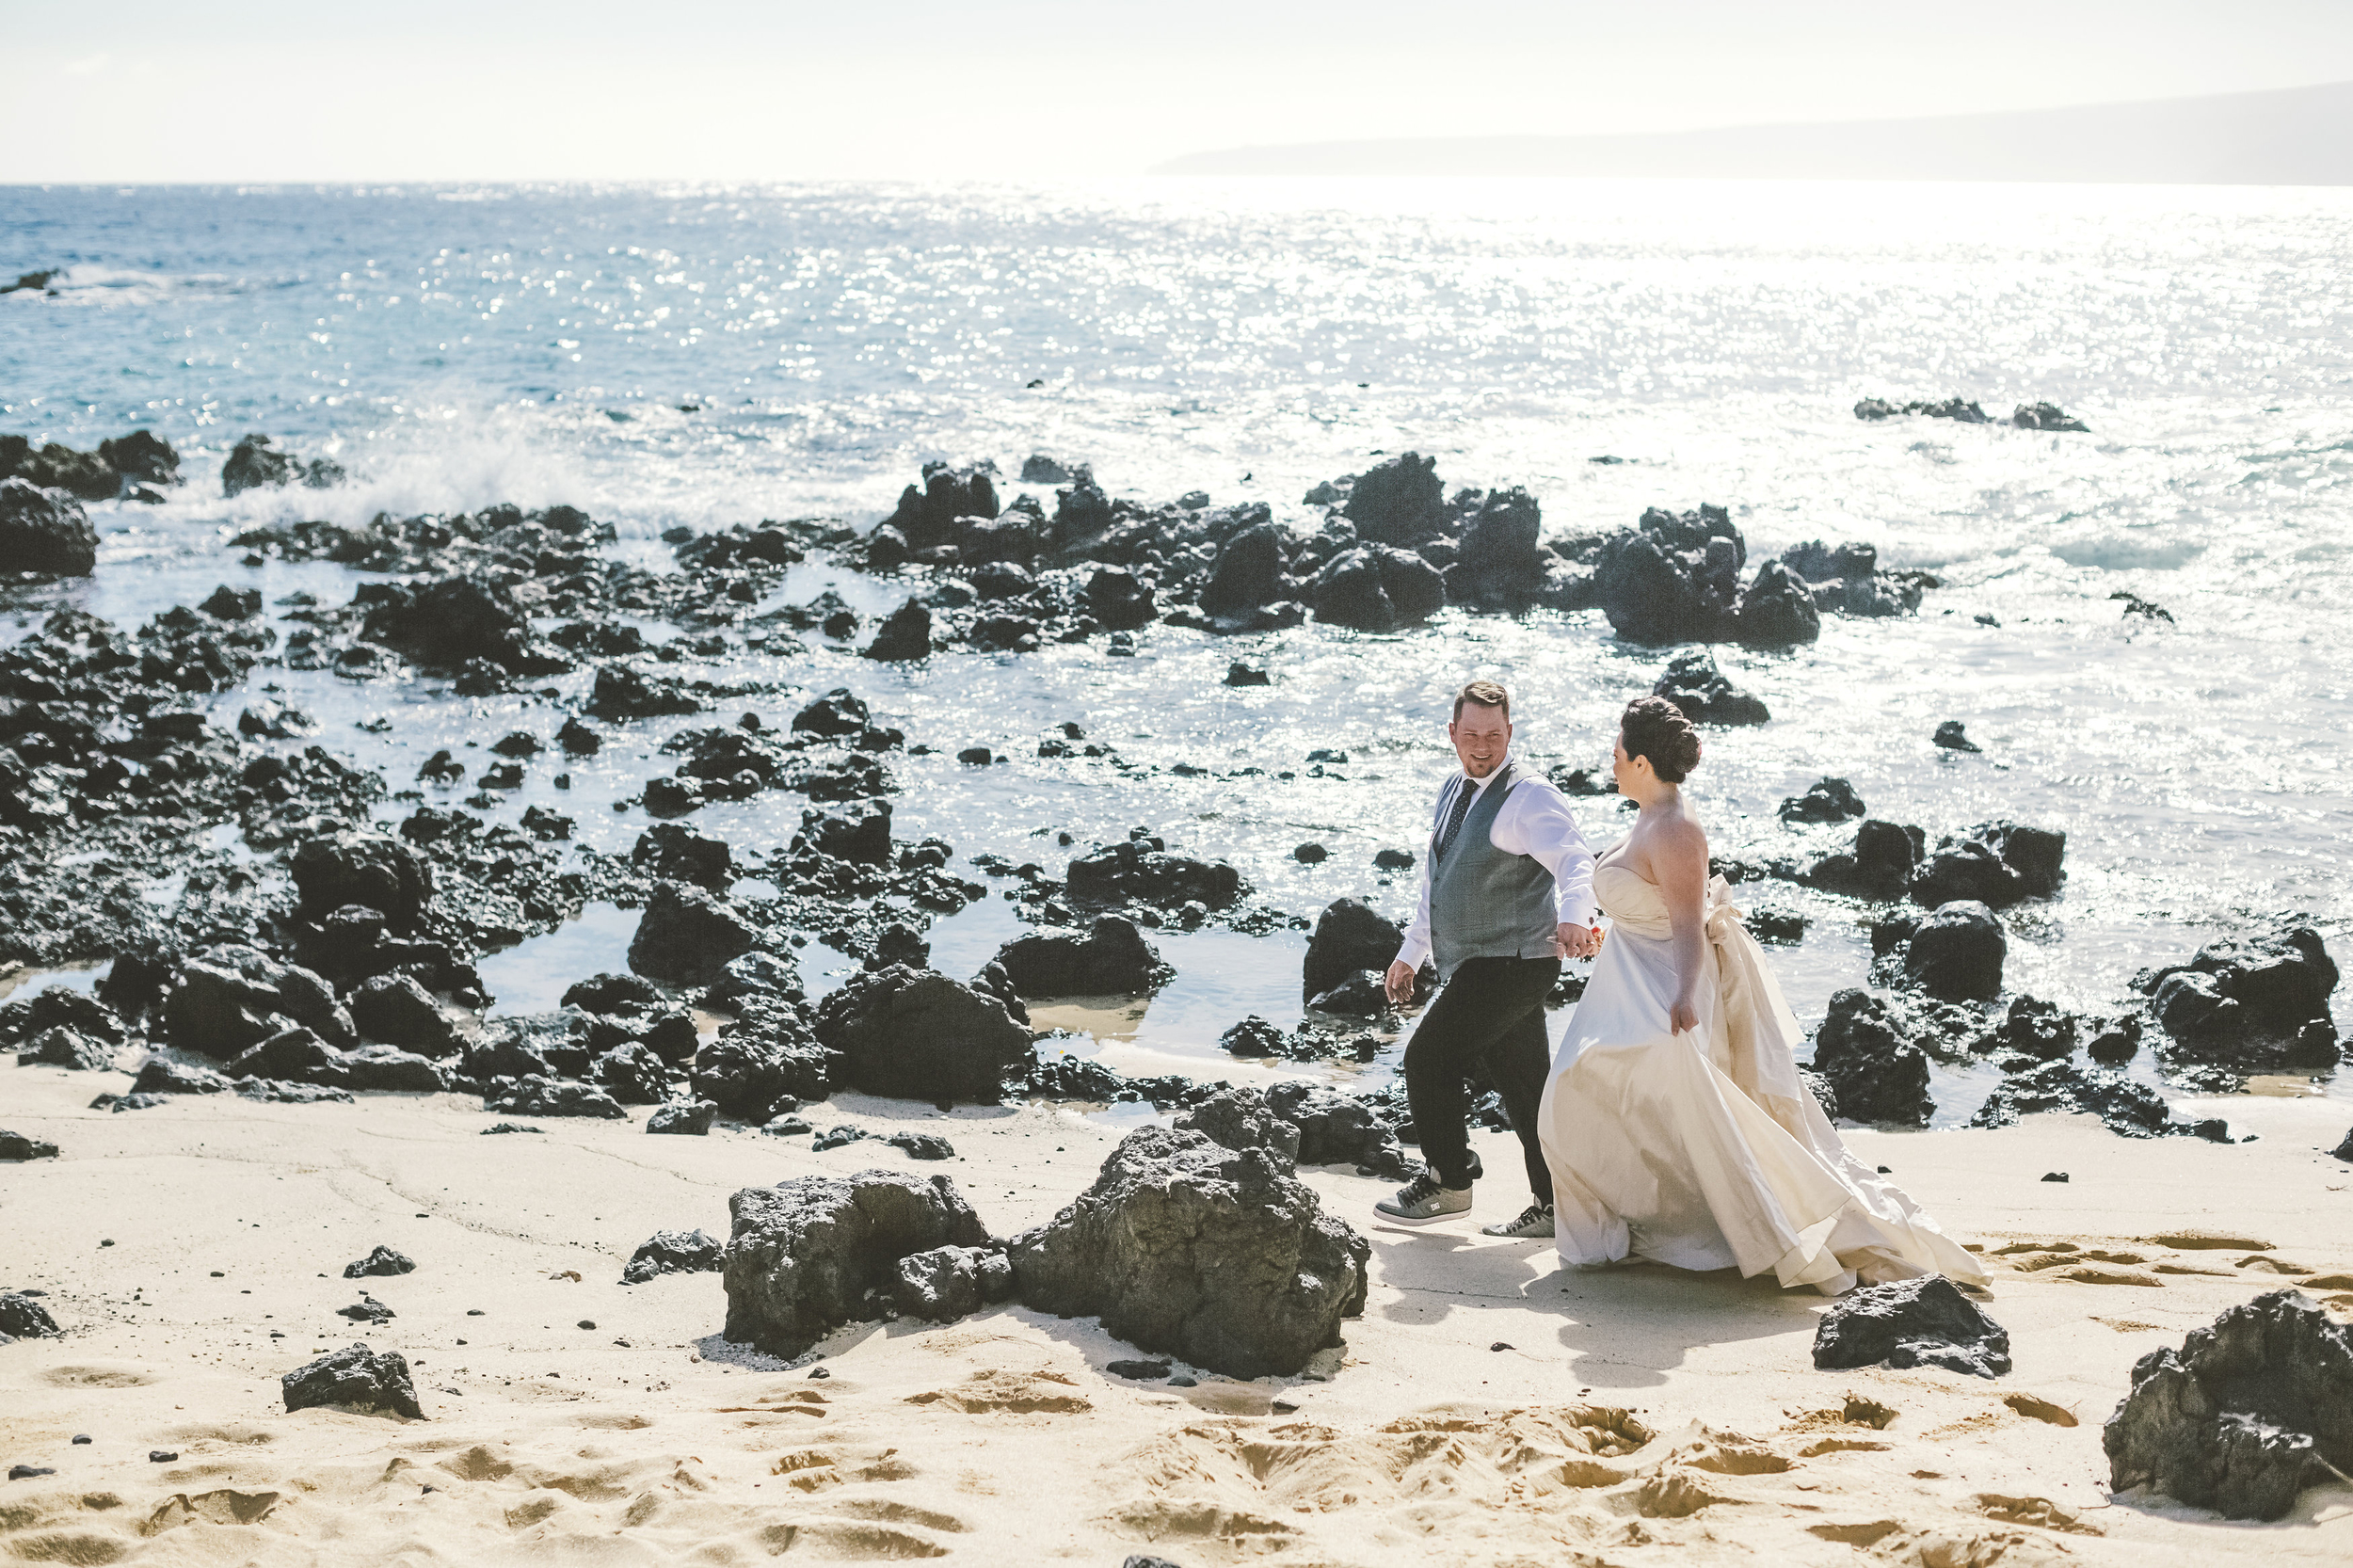 angie-diaz-photography-maui-elopement-28.jpg